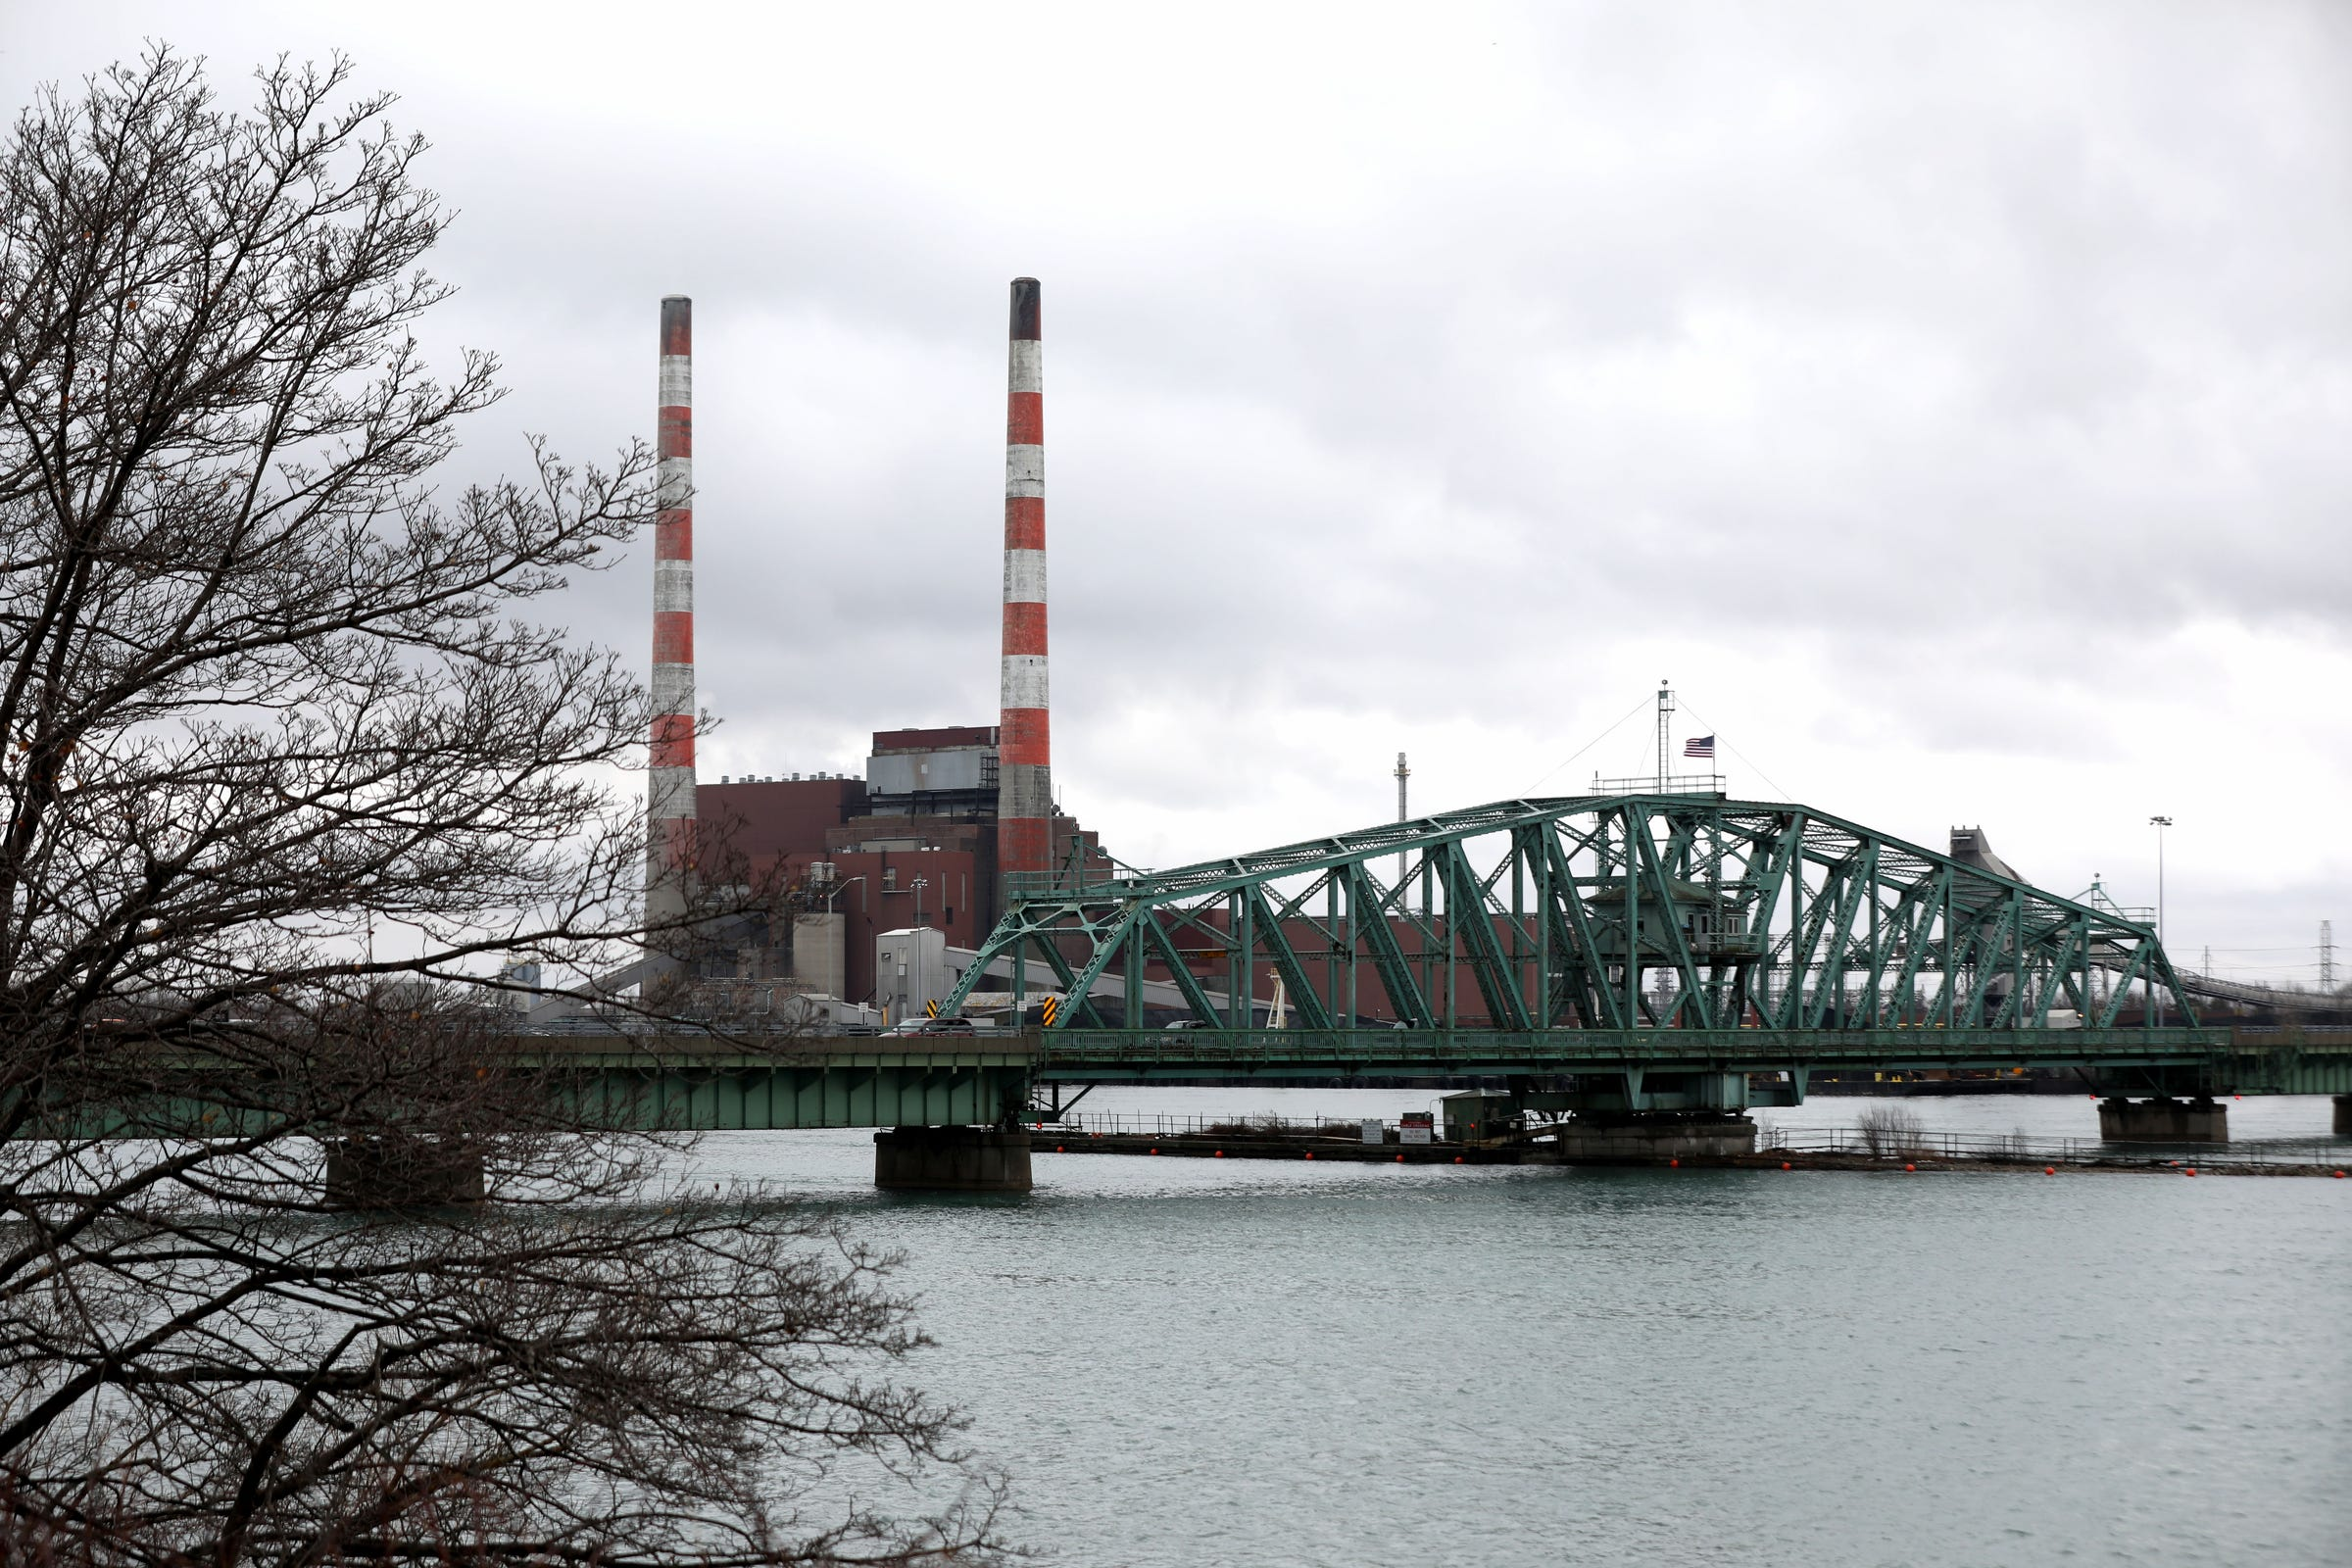 The Grosse Ile Parkway Bridge over the Trenton Channel as seen in March. This bridge was built in 1932 and reconstructed in 2007. The bridge is in serious condition and vehicle weight limits have been reduced to a total of 26 tons. Wayne County officials say construction on the bridge will begin in the fall.